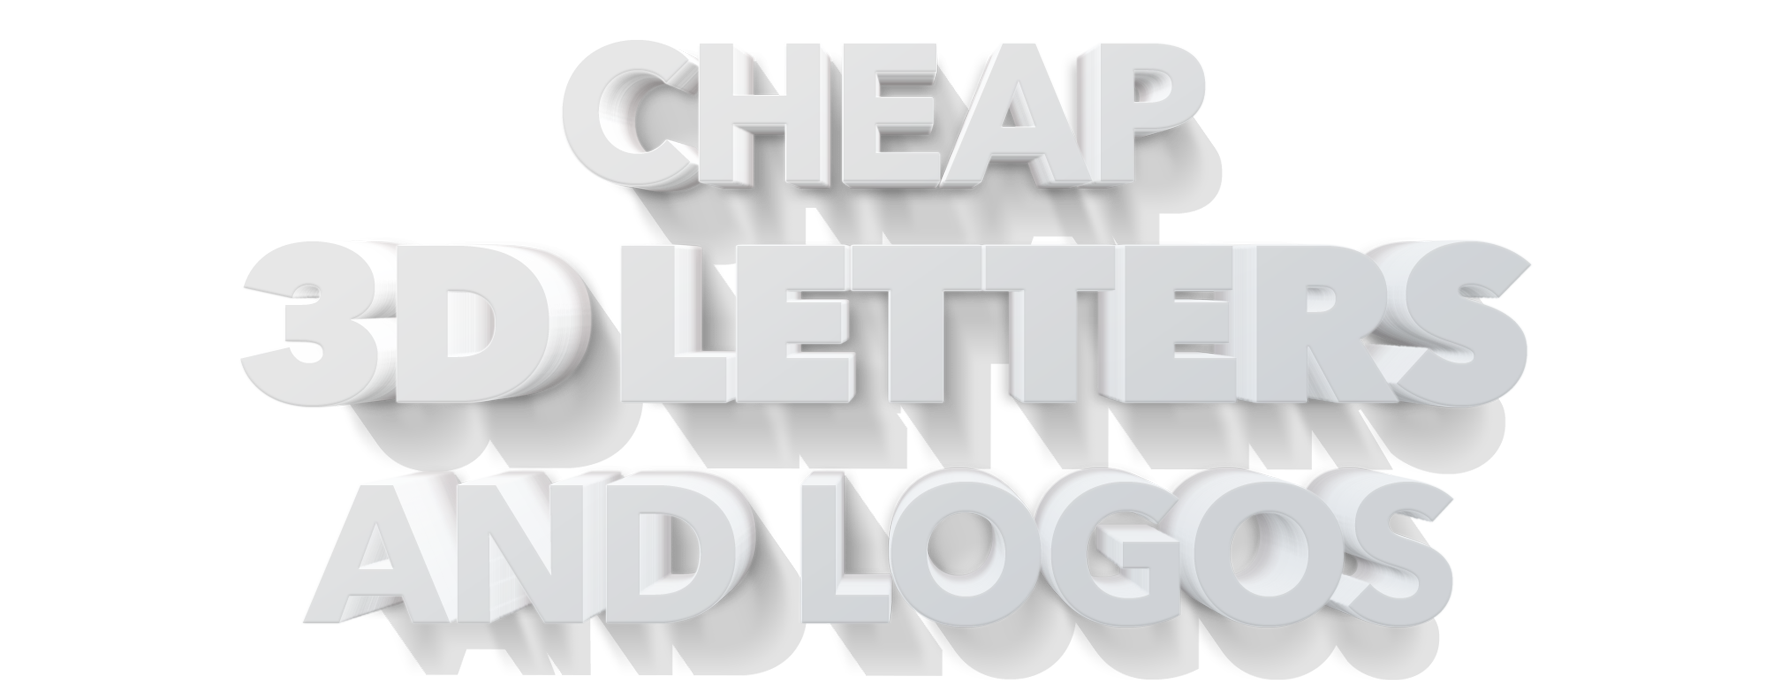 Cheap 3D Letters and Logos